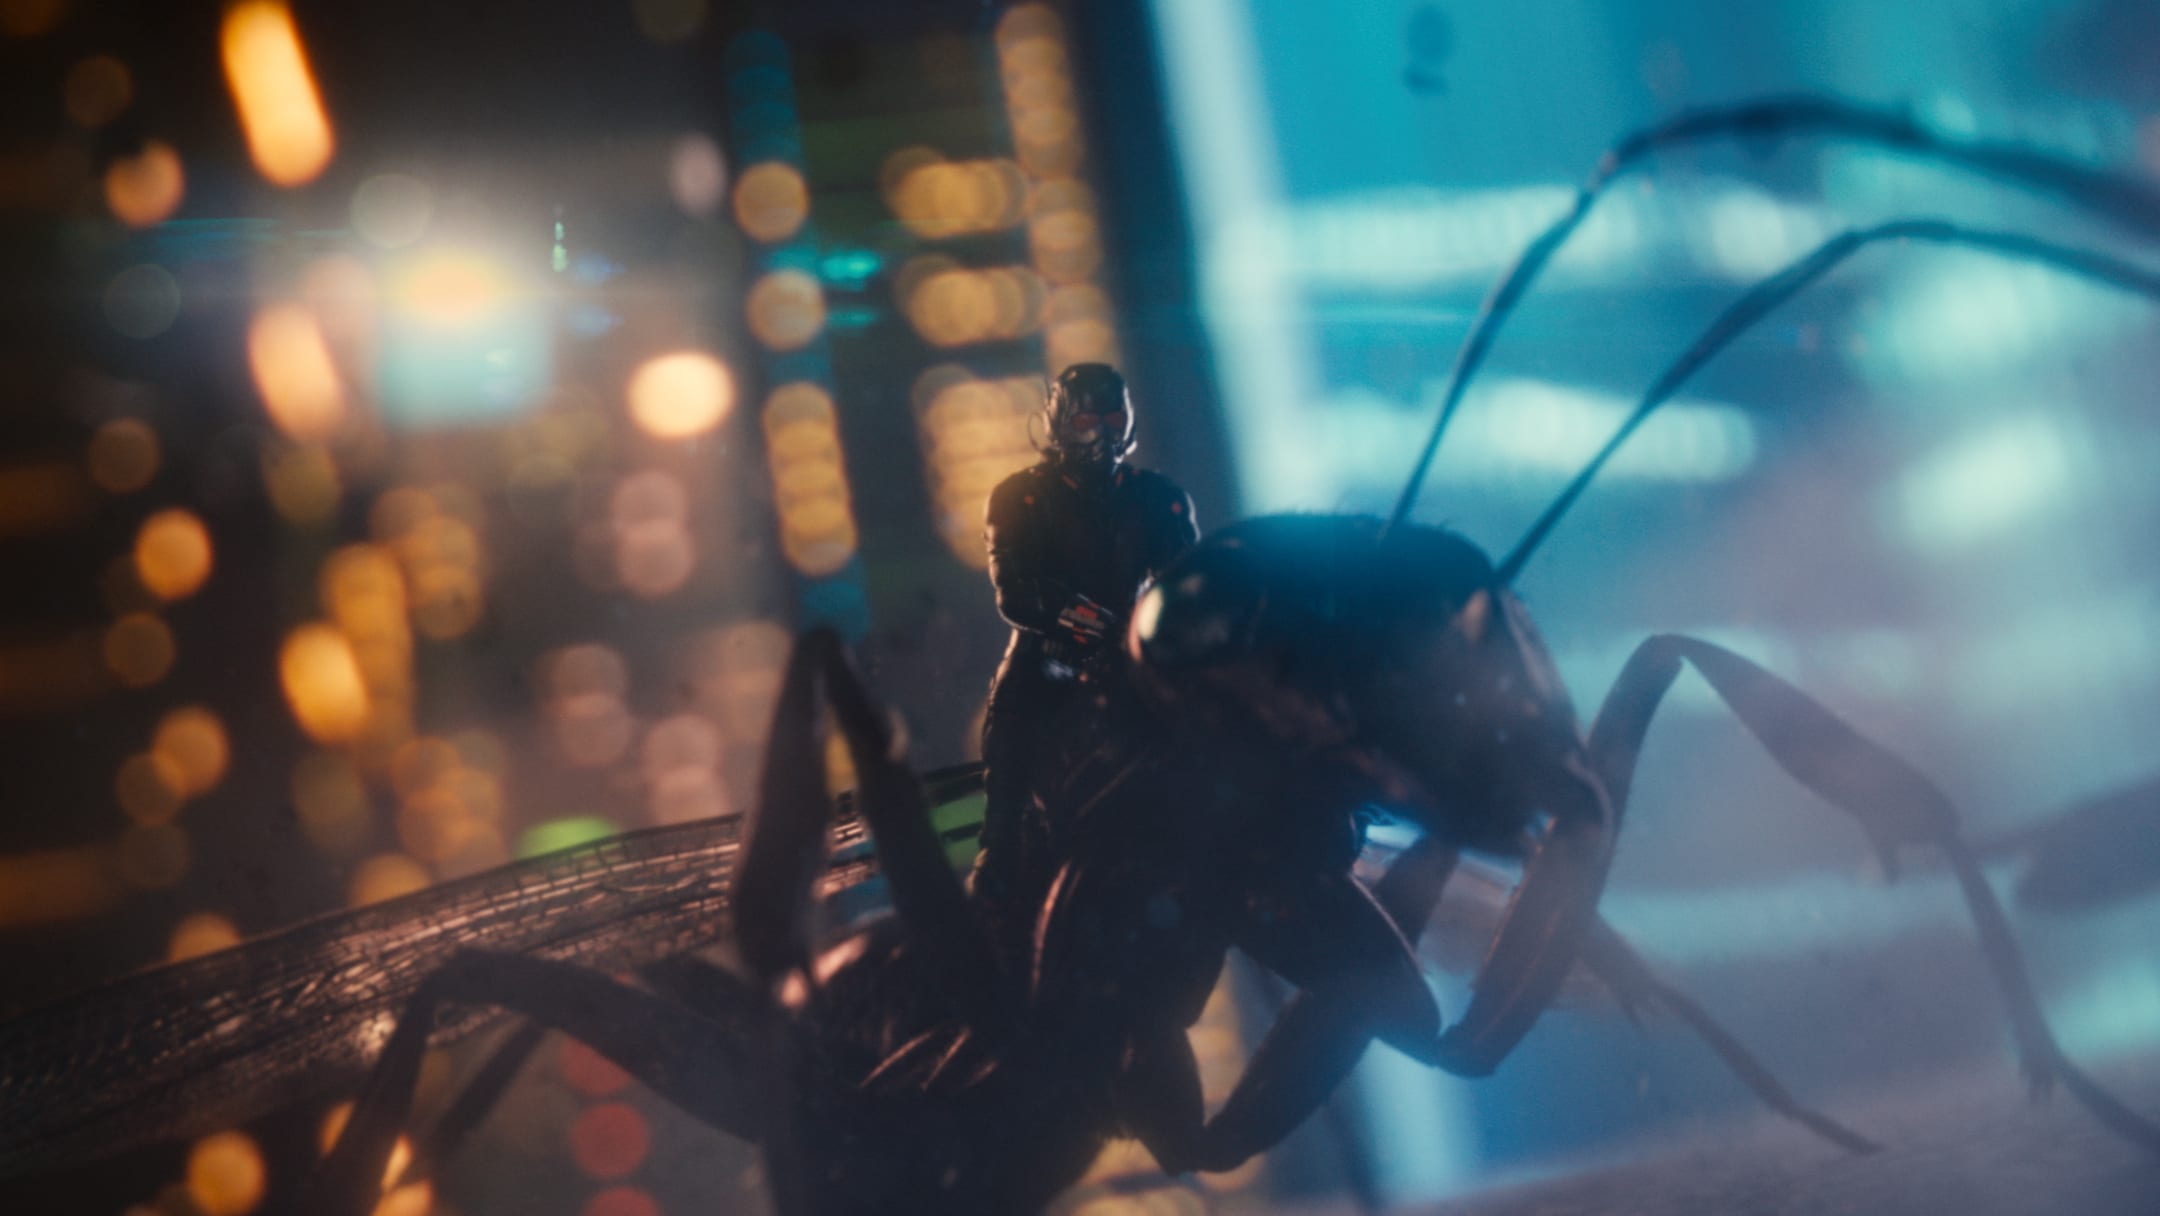 Paul Rudd (as Ant-Man) riding an ant named Ant-thony